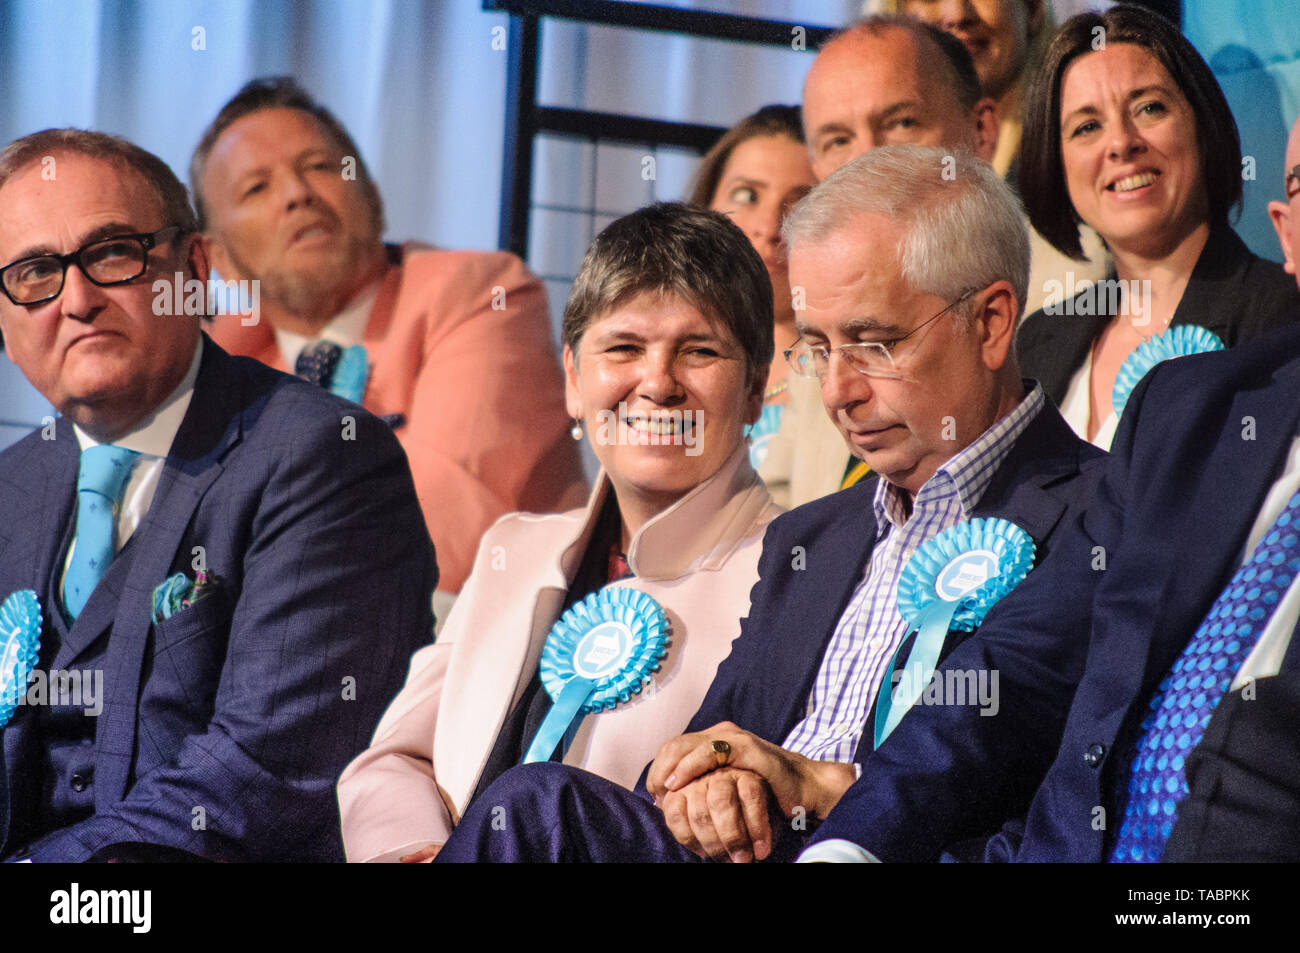 John Longworth (left) and Claire Fox (center) at Brexit Party Rally at London Olympia on 21 May 2019 before the European Election Vote on the 23 May - Stock Image